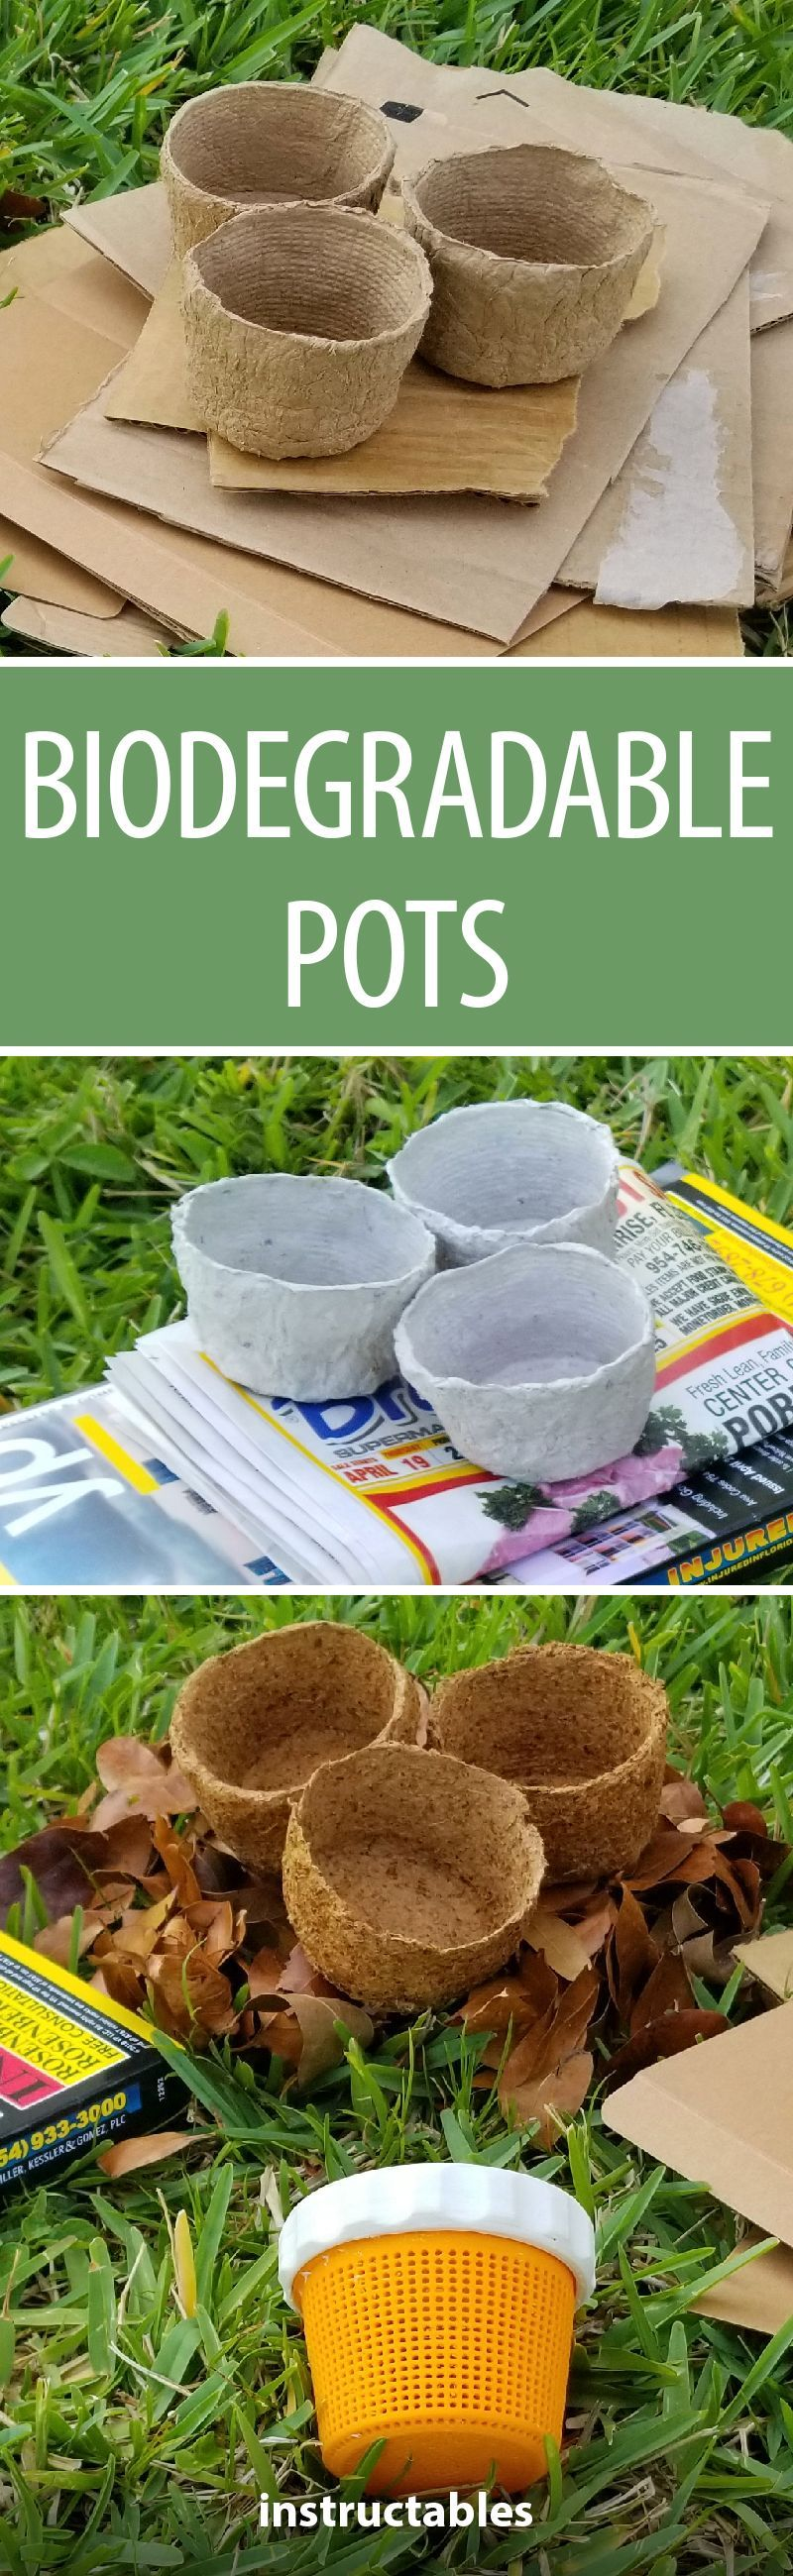 Biodegradable Pots With Images Biodegradable Products 400 x 300